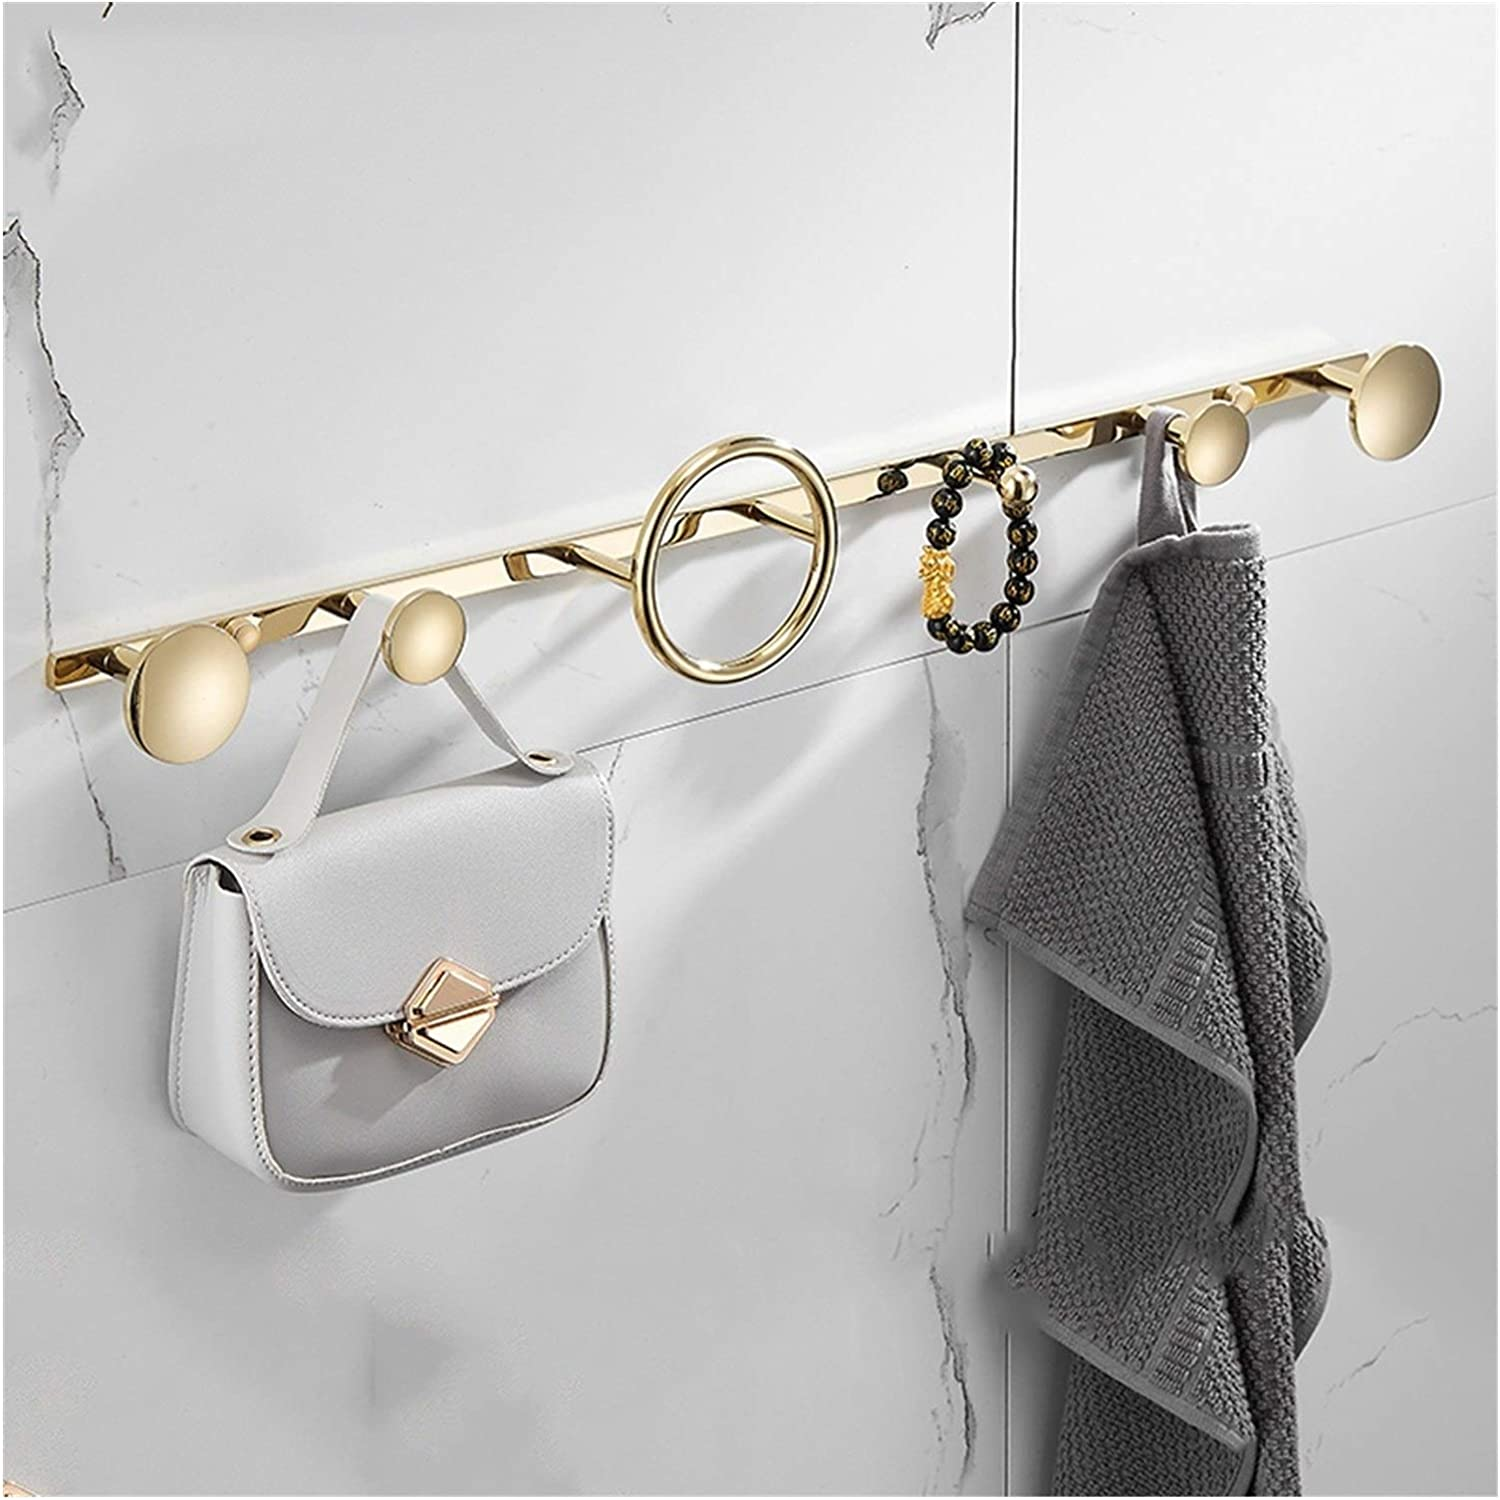 Coat Rack Wall Mount Hooks Hoo Recommended Gold Max 48% OFF Luxury Light Black